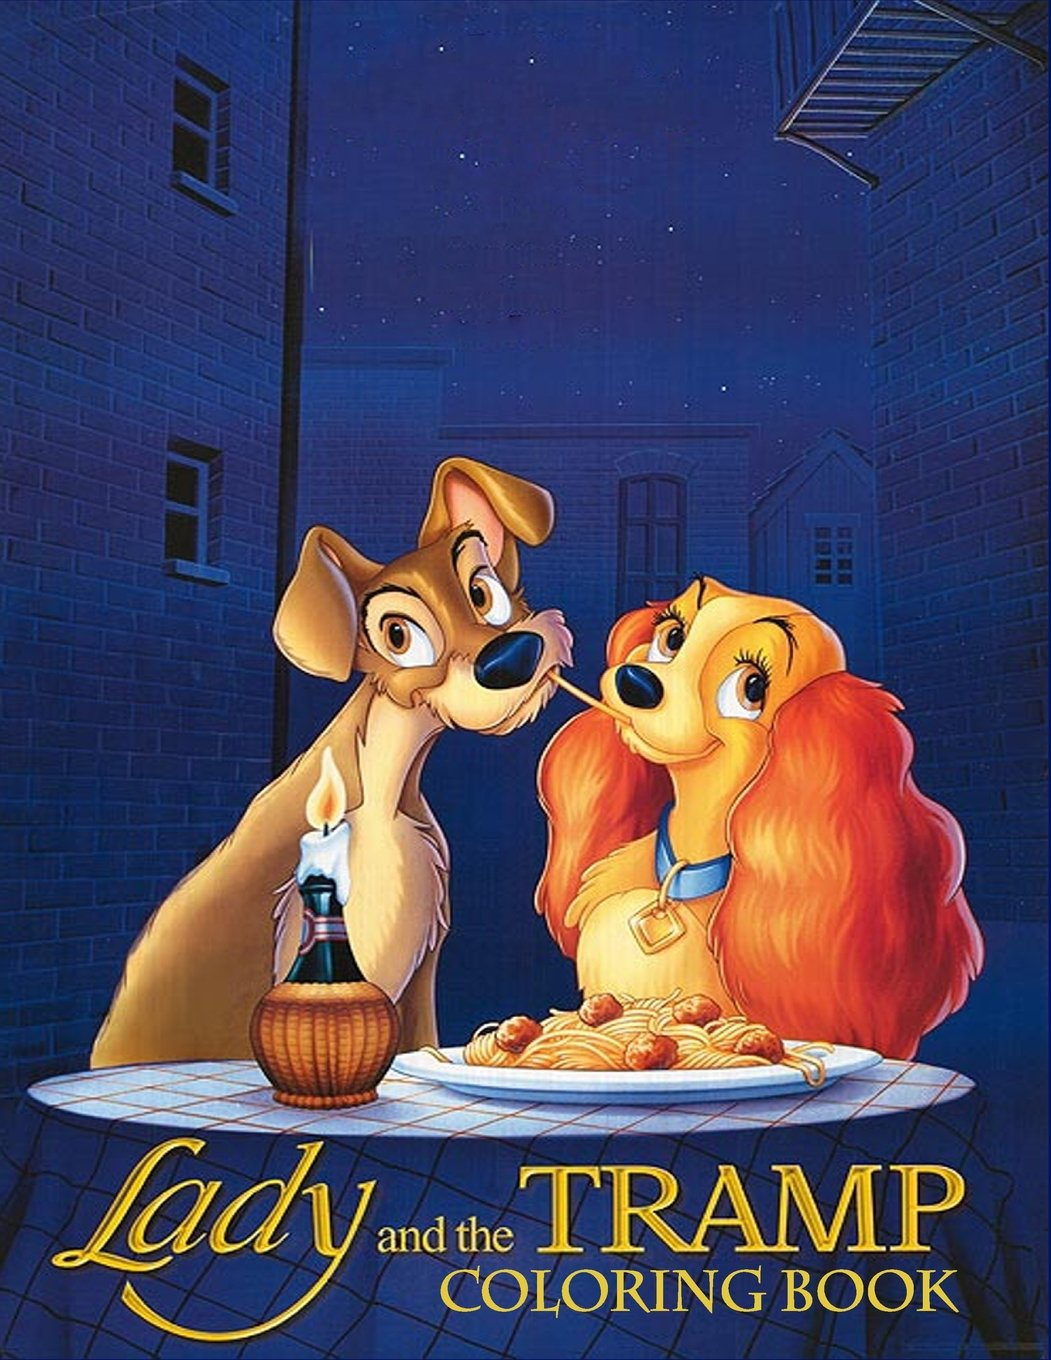 Read Online Lady and the Tramp Coloring Book: Coloring Book for Kids and Adults, This Amazing Coloring Book Will Make Your Kids Happier and Give Them Joy (Best ... Books for Adults and Kids 2-4 4-8 8-12+) pdf epub